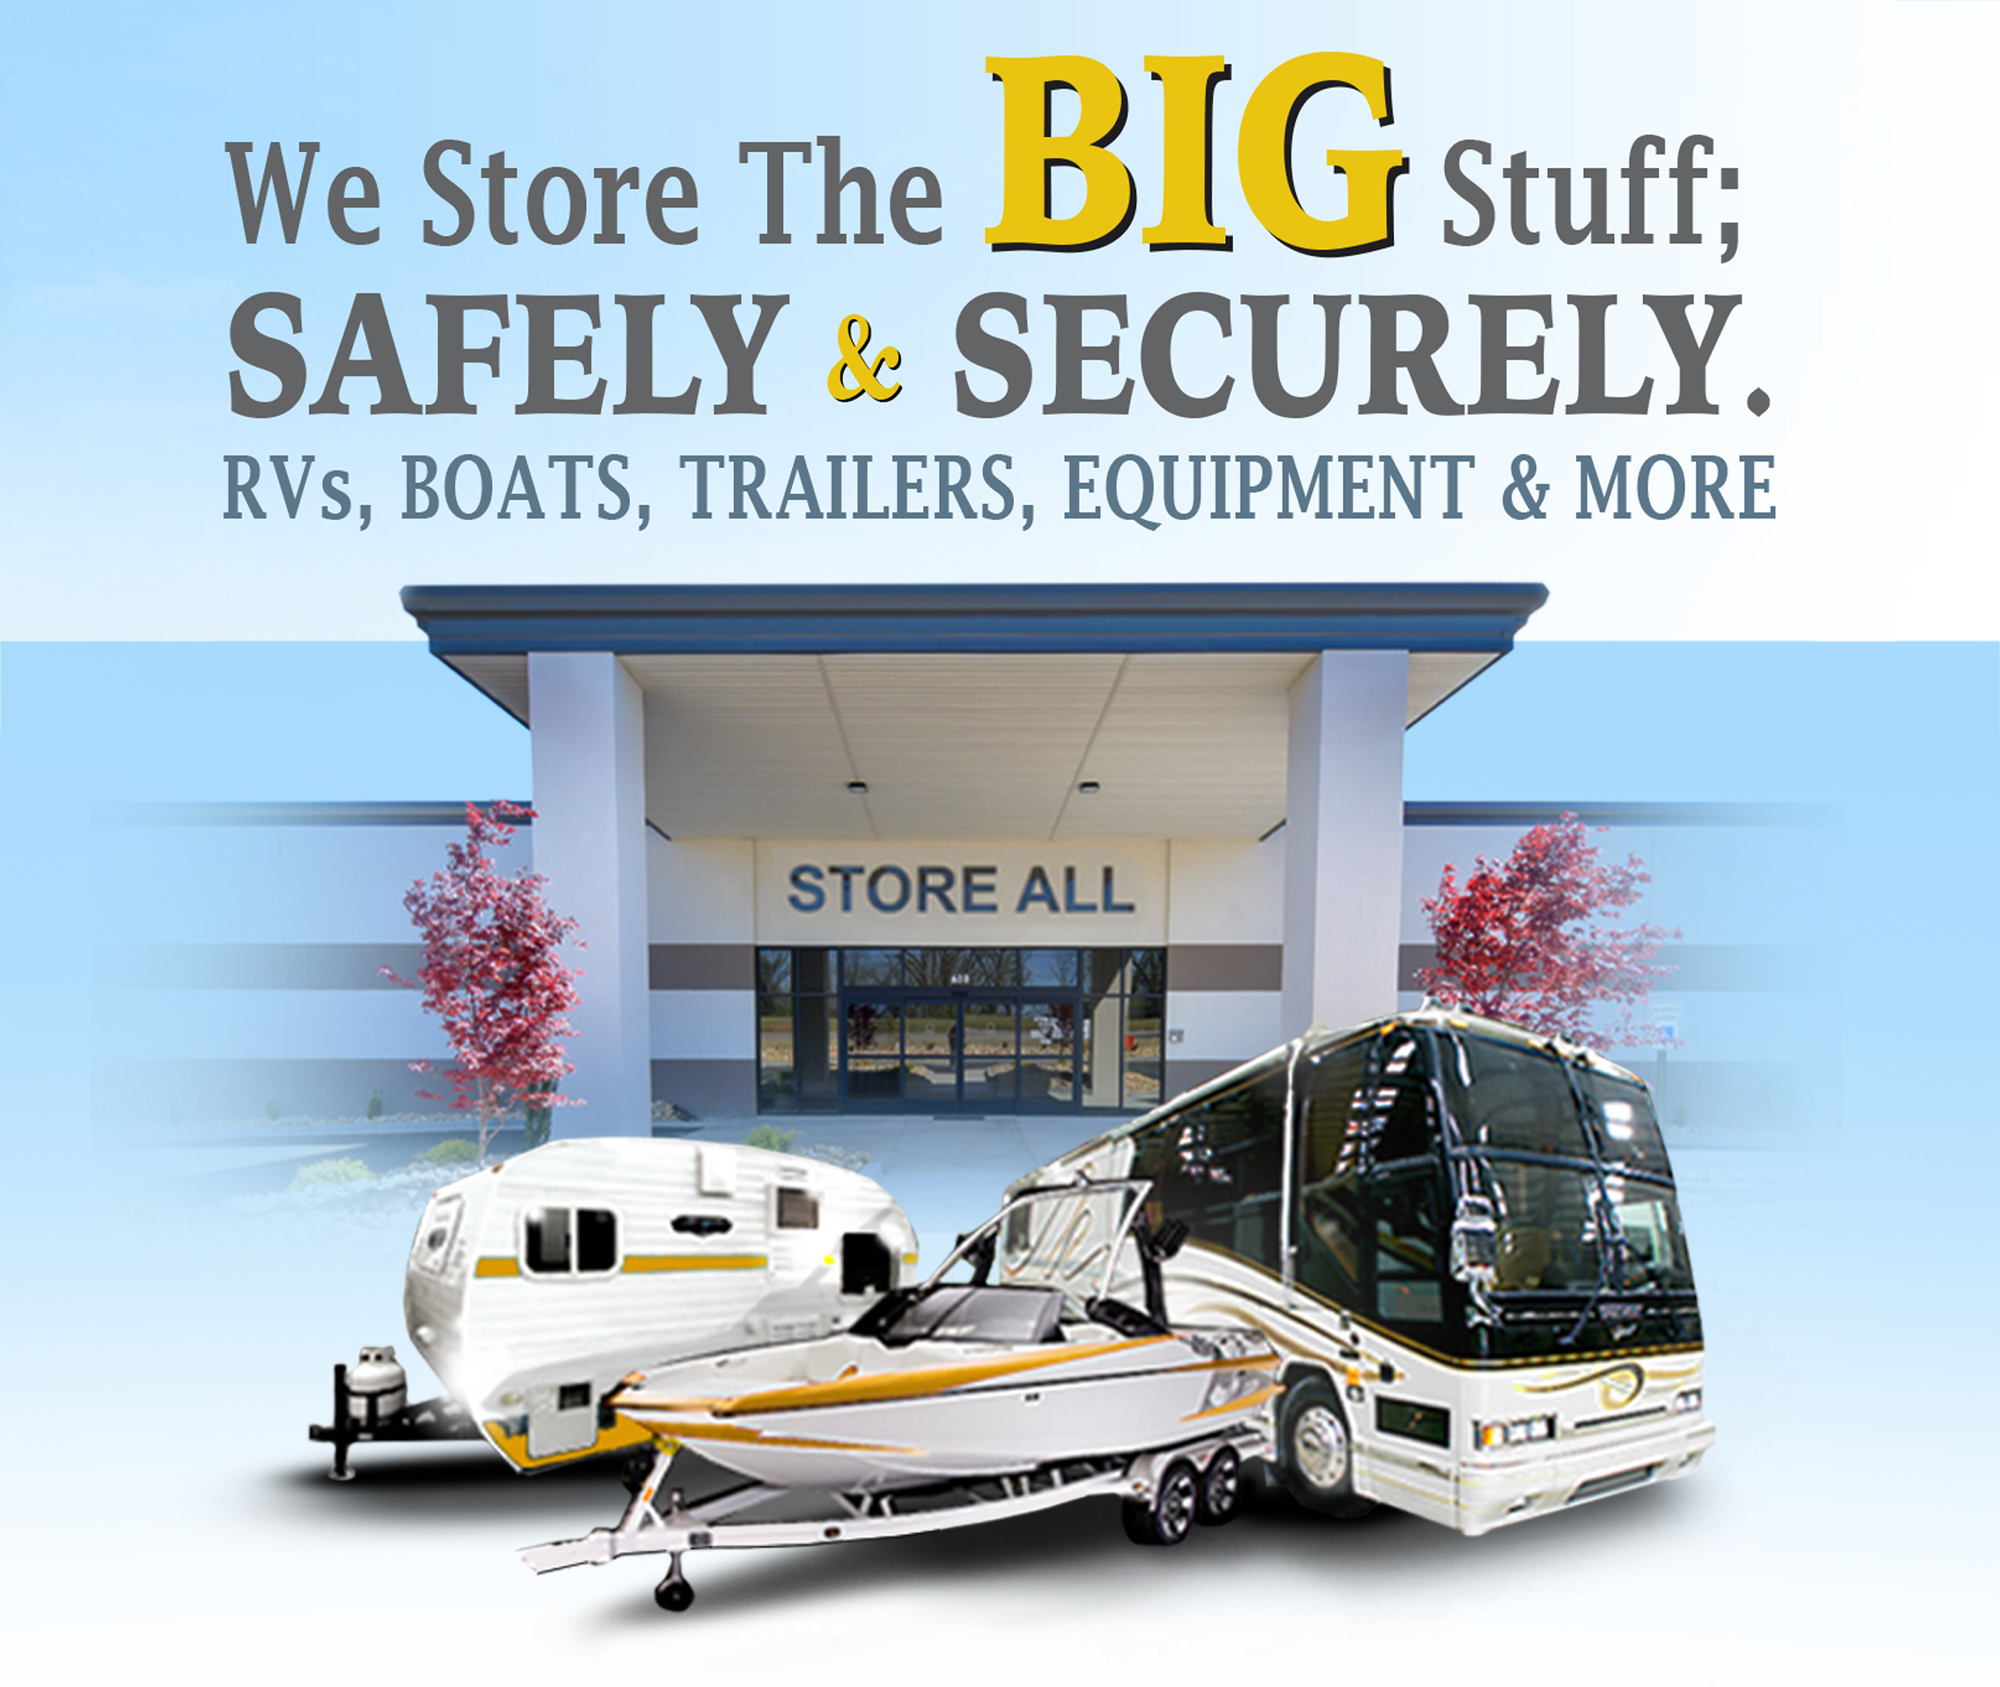 Store all, climate controlled storage, storage units, rv storage, boat storage